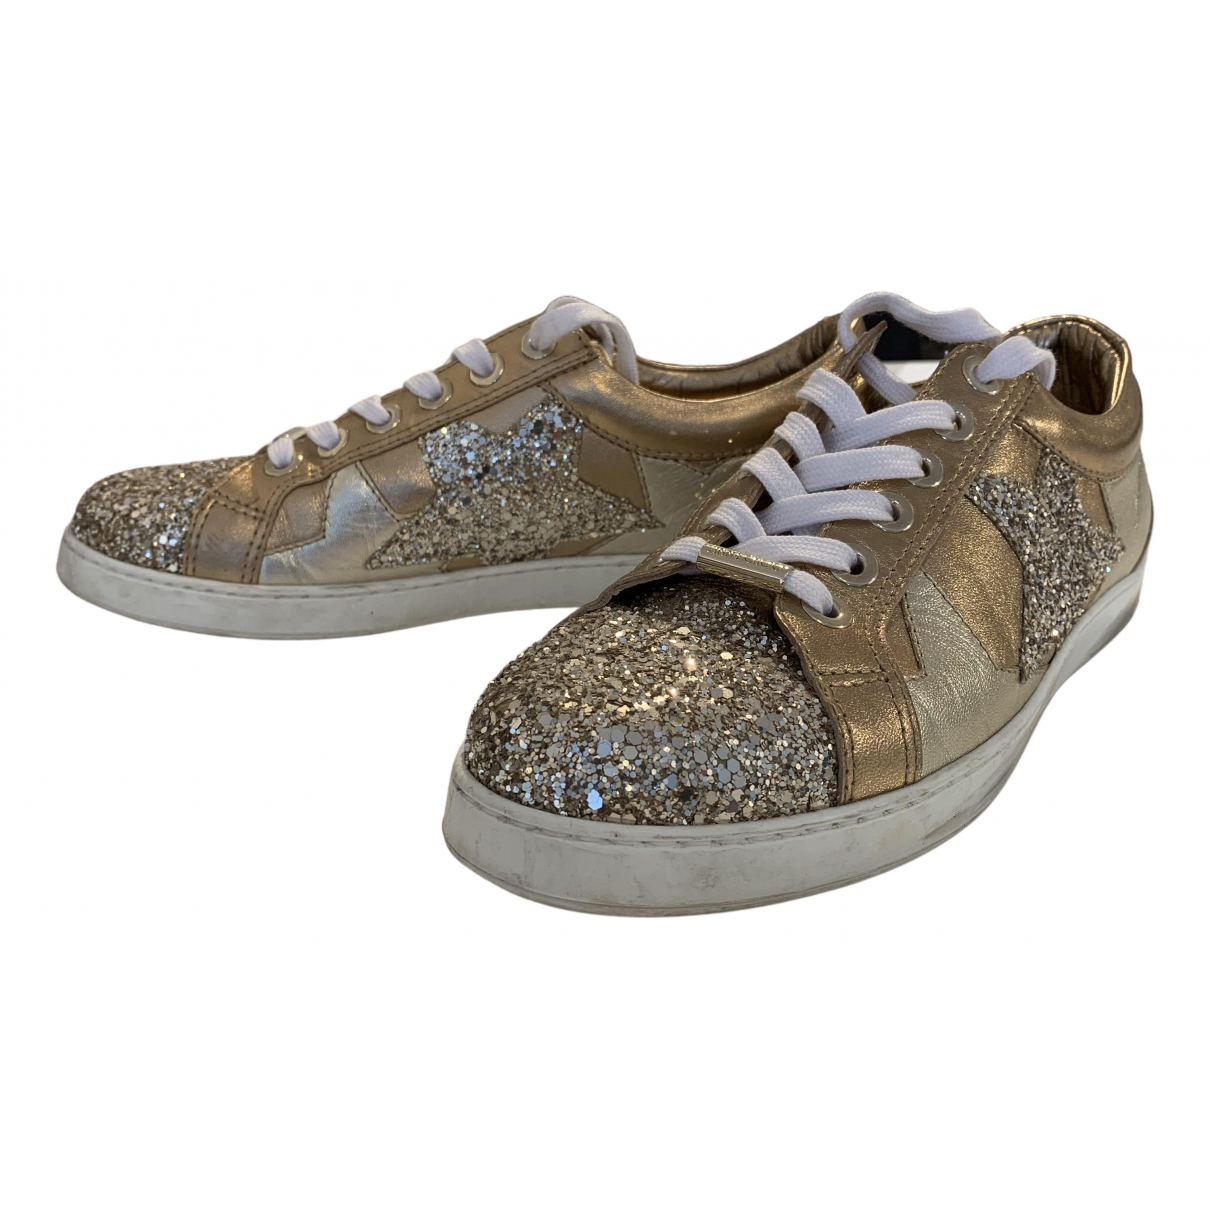 Jimmy Choo N Gold Glitter Trainers for Women 39.5 EU